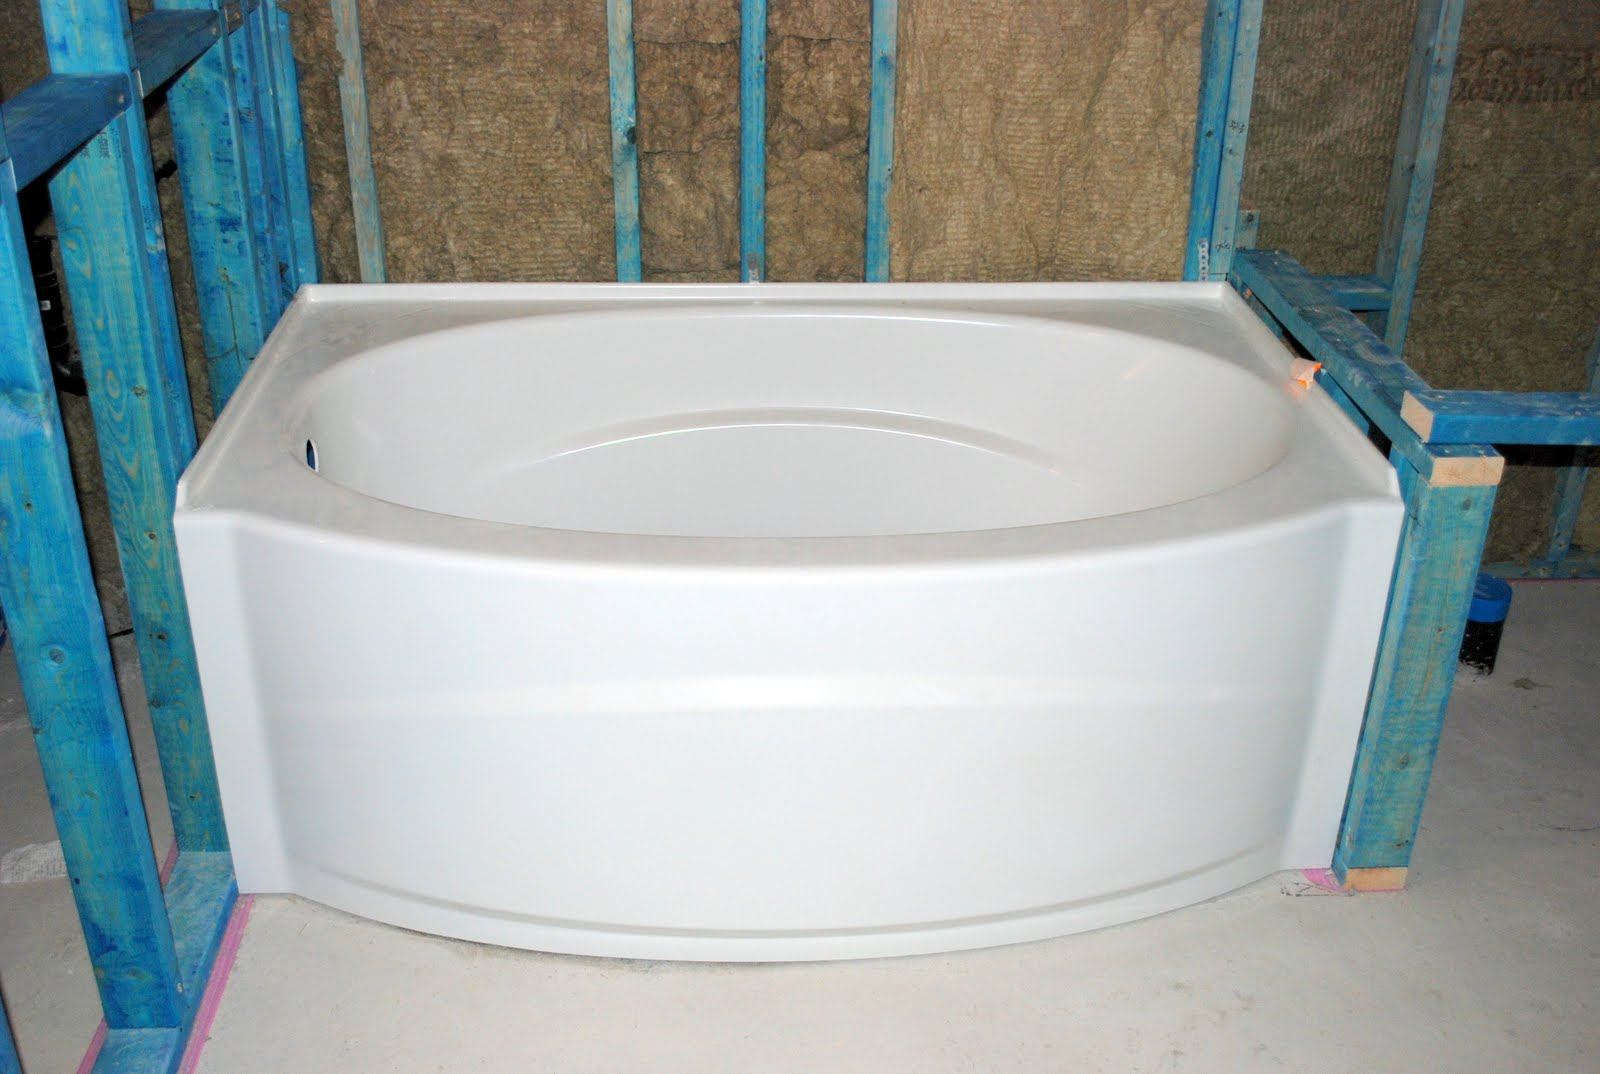 Puj Infant Sink Tub The Soft and Foldable Baby Bath Tub DesignRulz.com